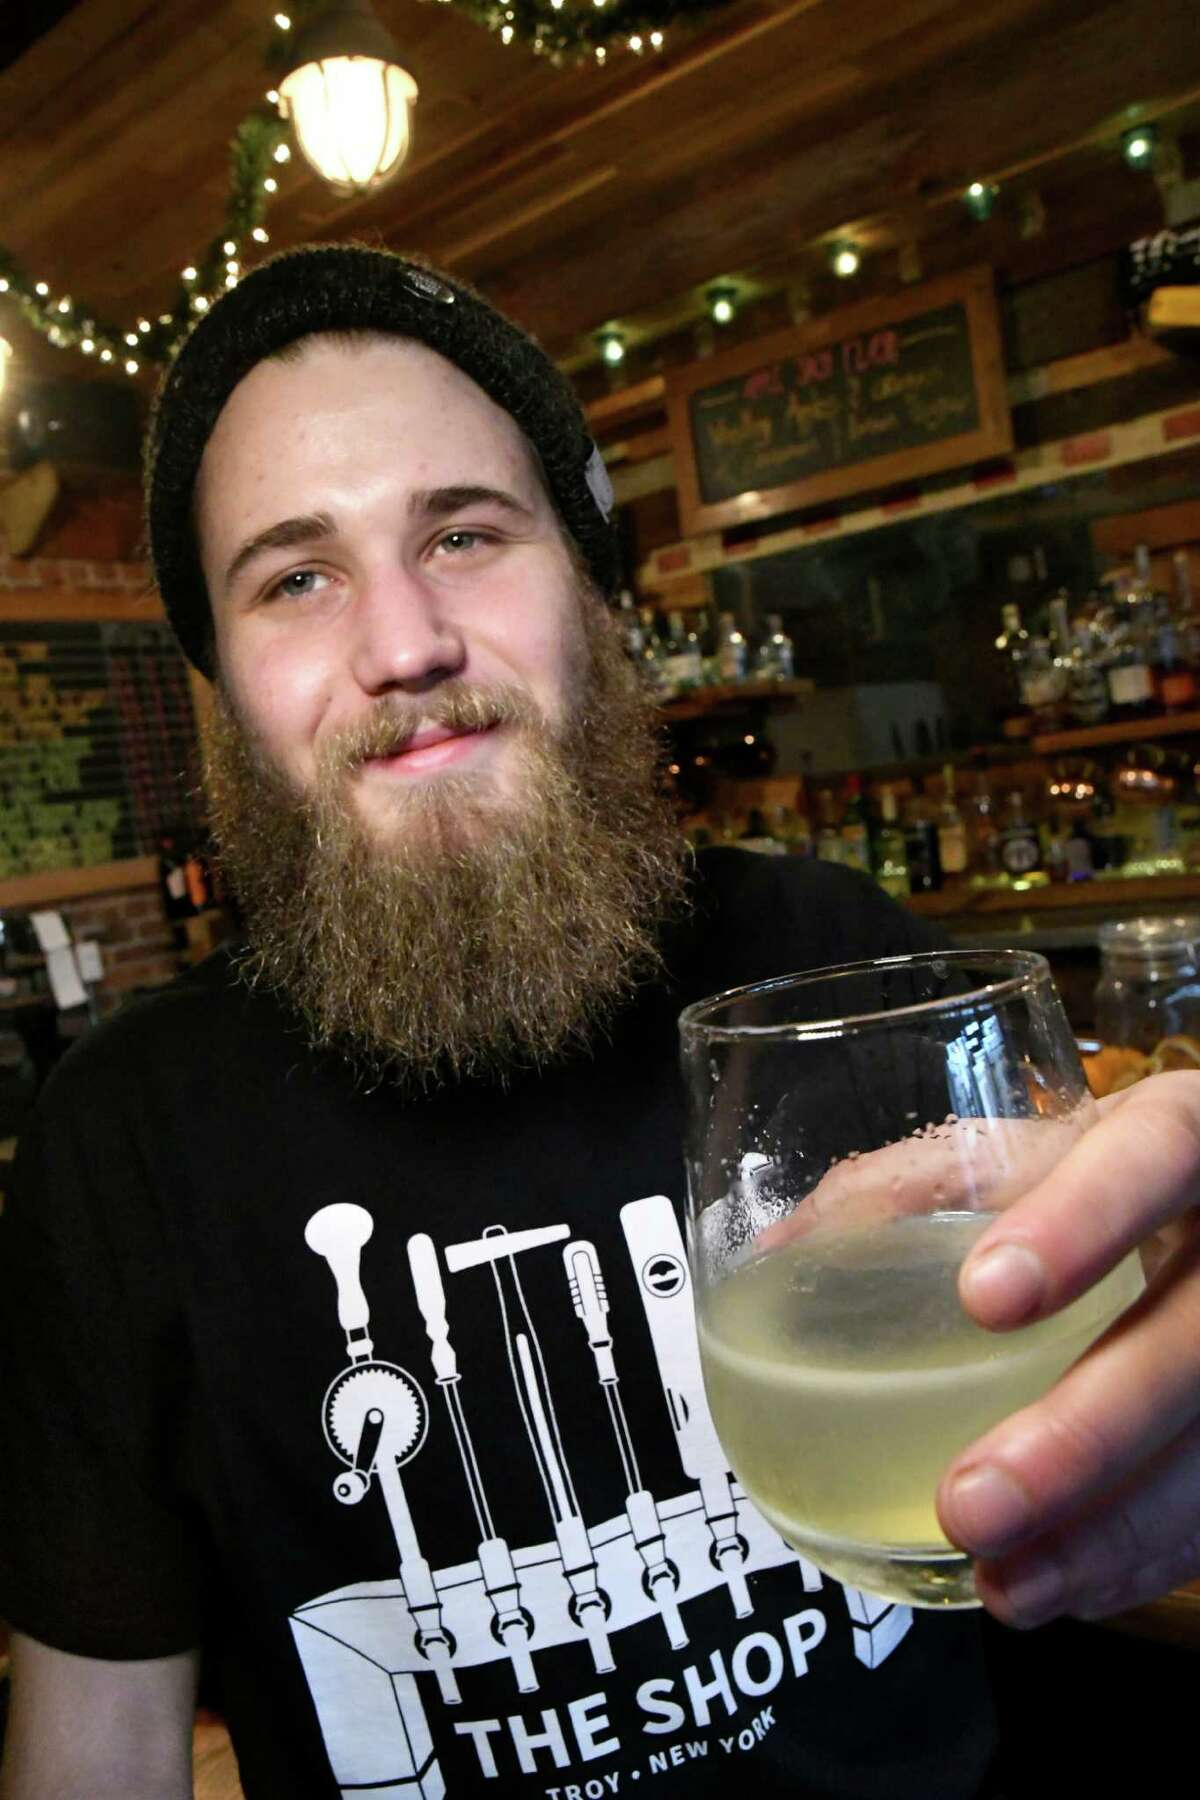 Bartender Sam Hooker holds The Trickle Down cocktail on Friday, Dec. 23, 2016, at The Shop in Troy, N.Y. (Cindy Schultz / Times Union)